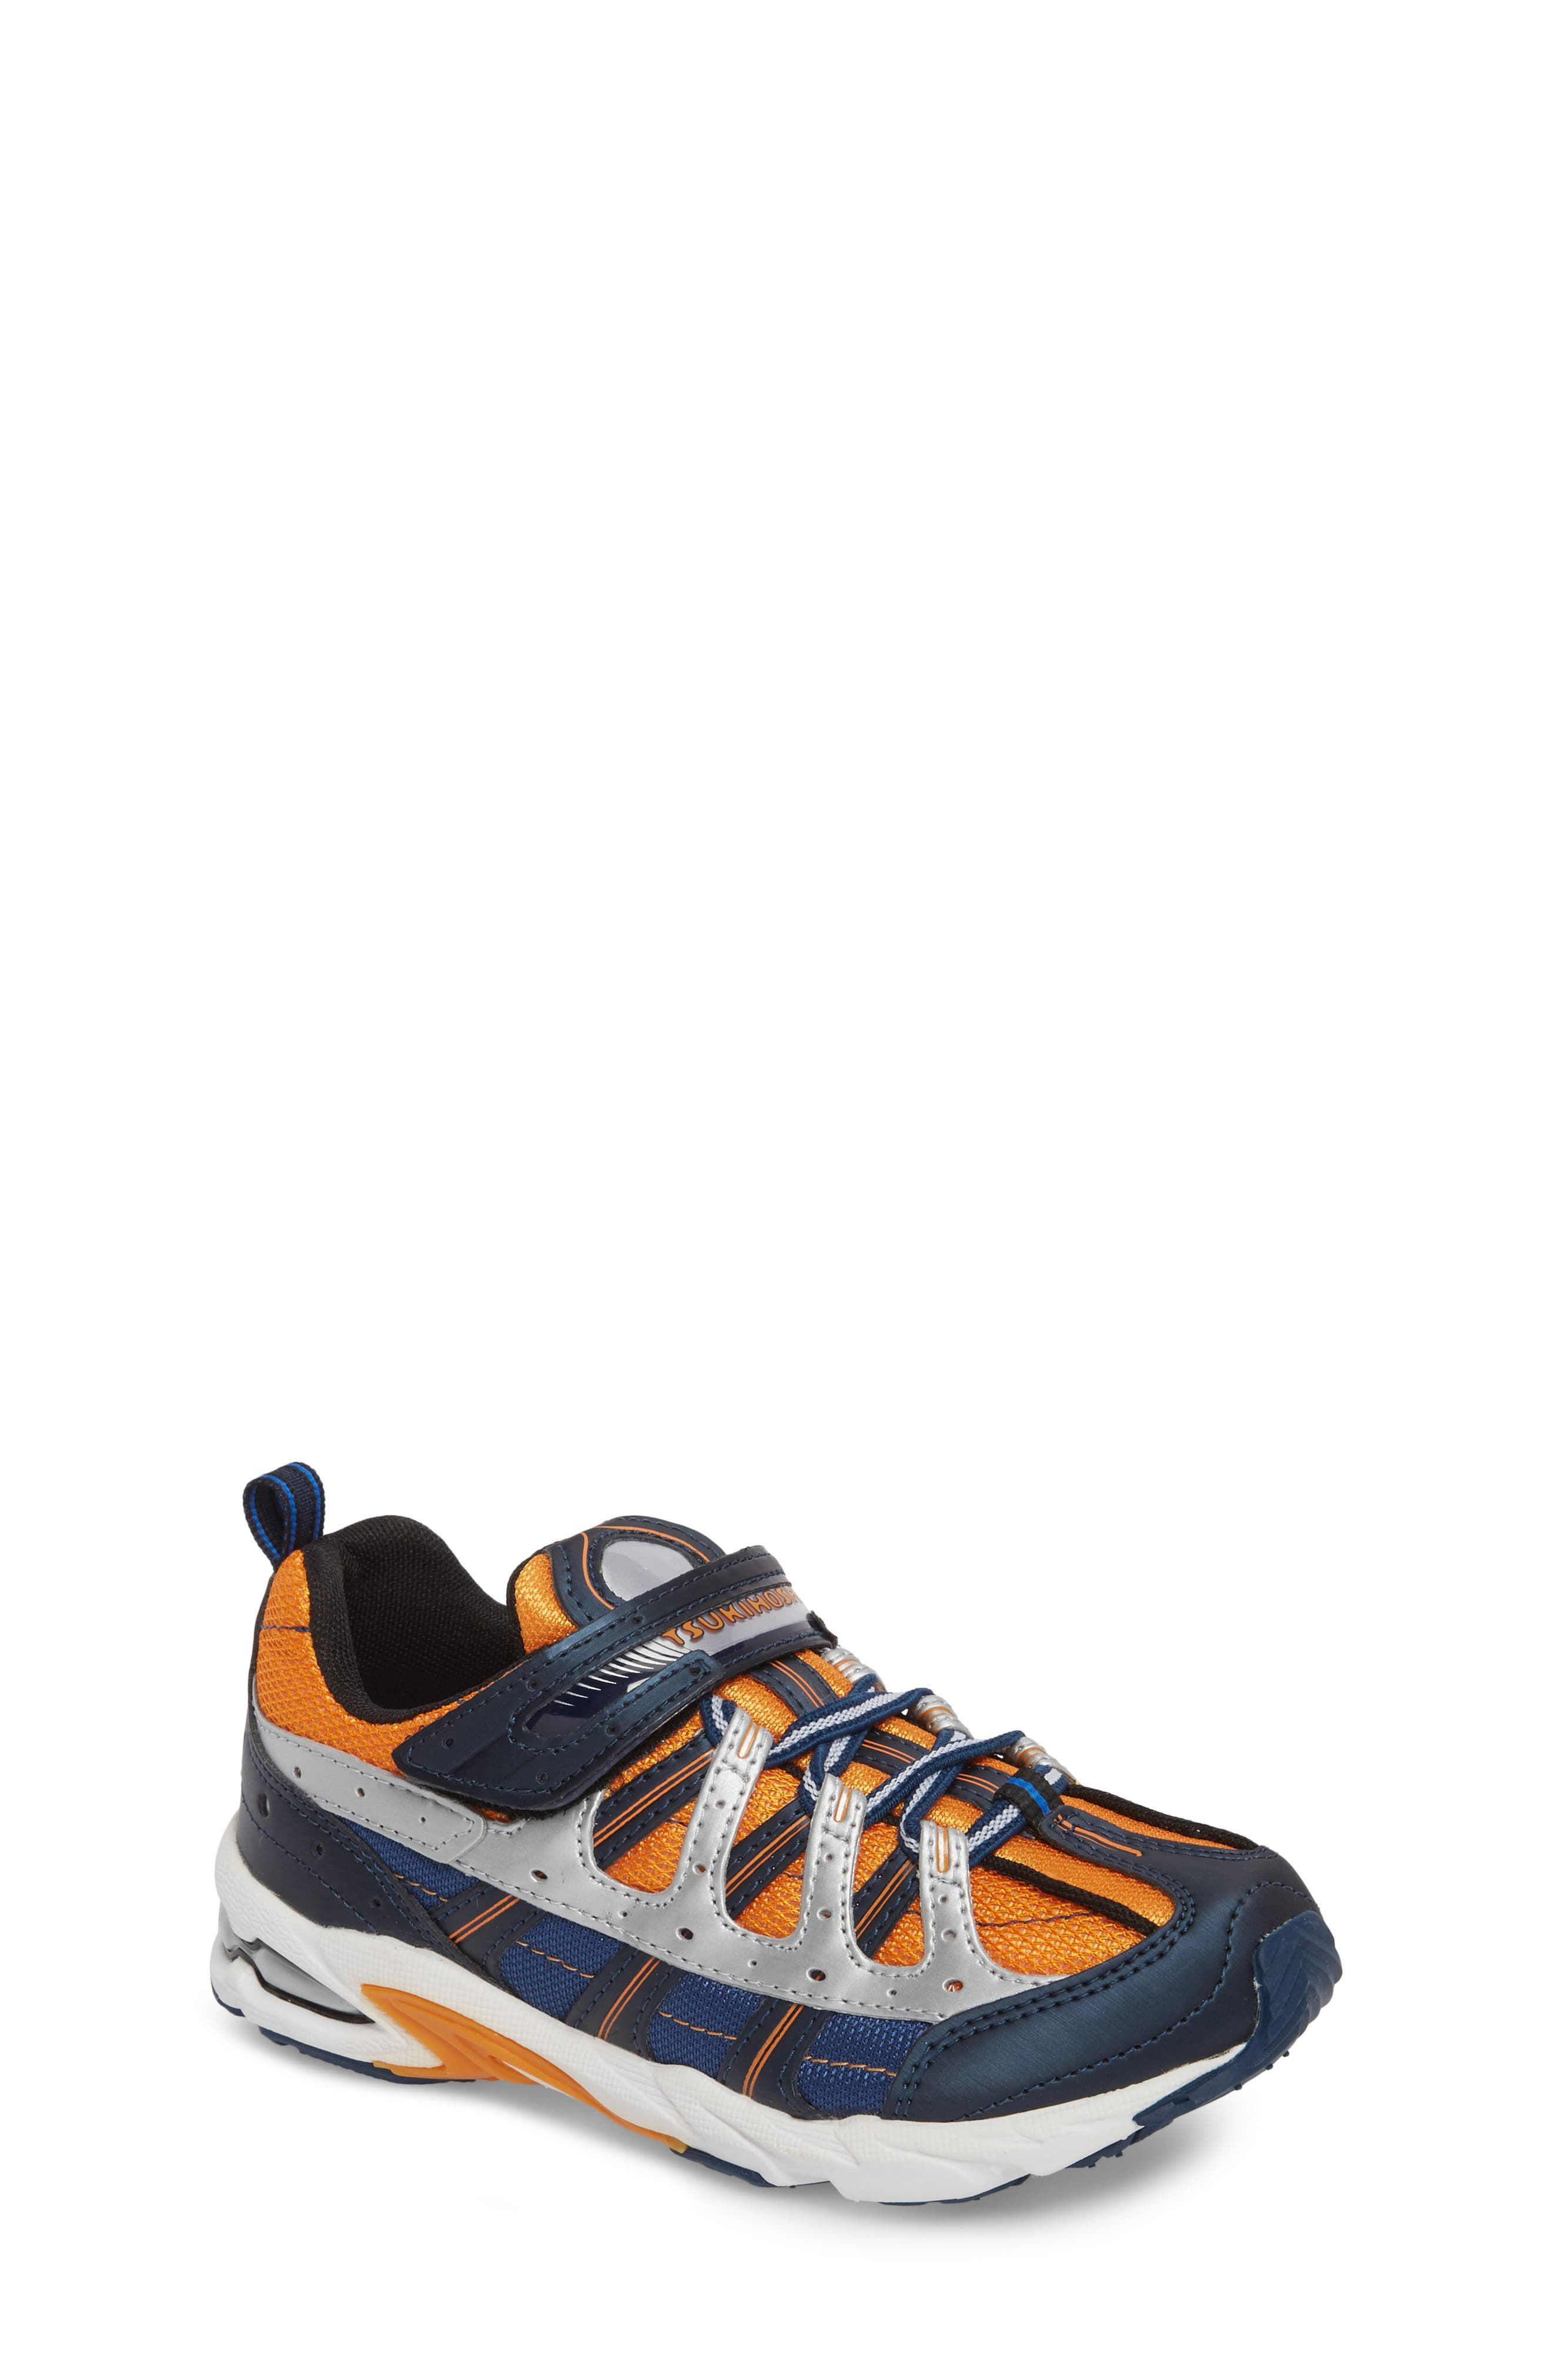 Speed Washable Sneaker,                             Main thumbnail 1, color,                             Navy/ Orange